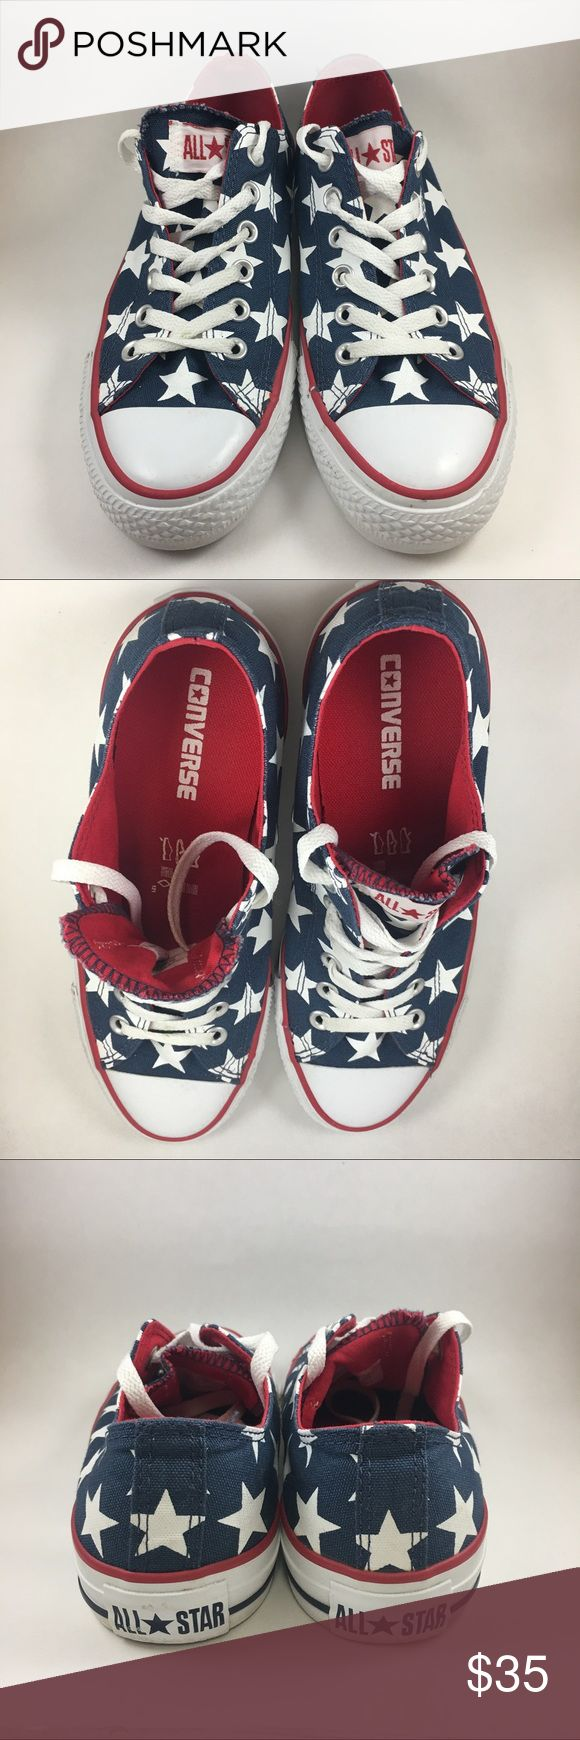 All Star Converse Chuck USA Flag Shoes Women 8 Low Beautiful American Converse Shoes! No Chuck Taylor Sign. Small grass stain on laces and minimal marks. See pictures for all details.  #141 Converse Shoes Athletic Shoes